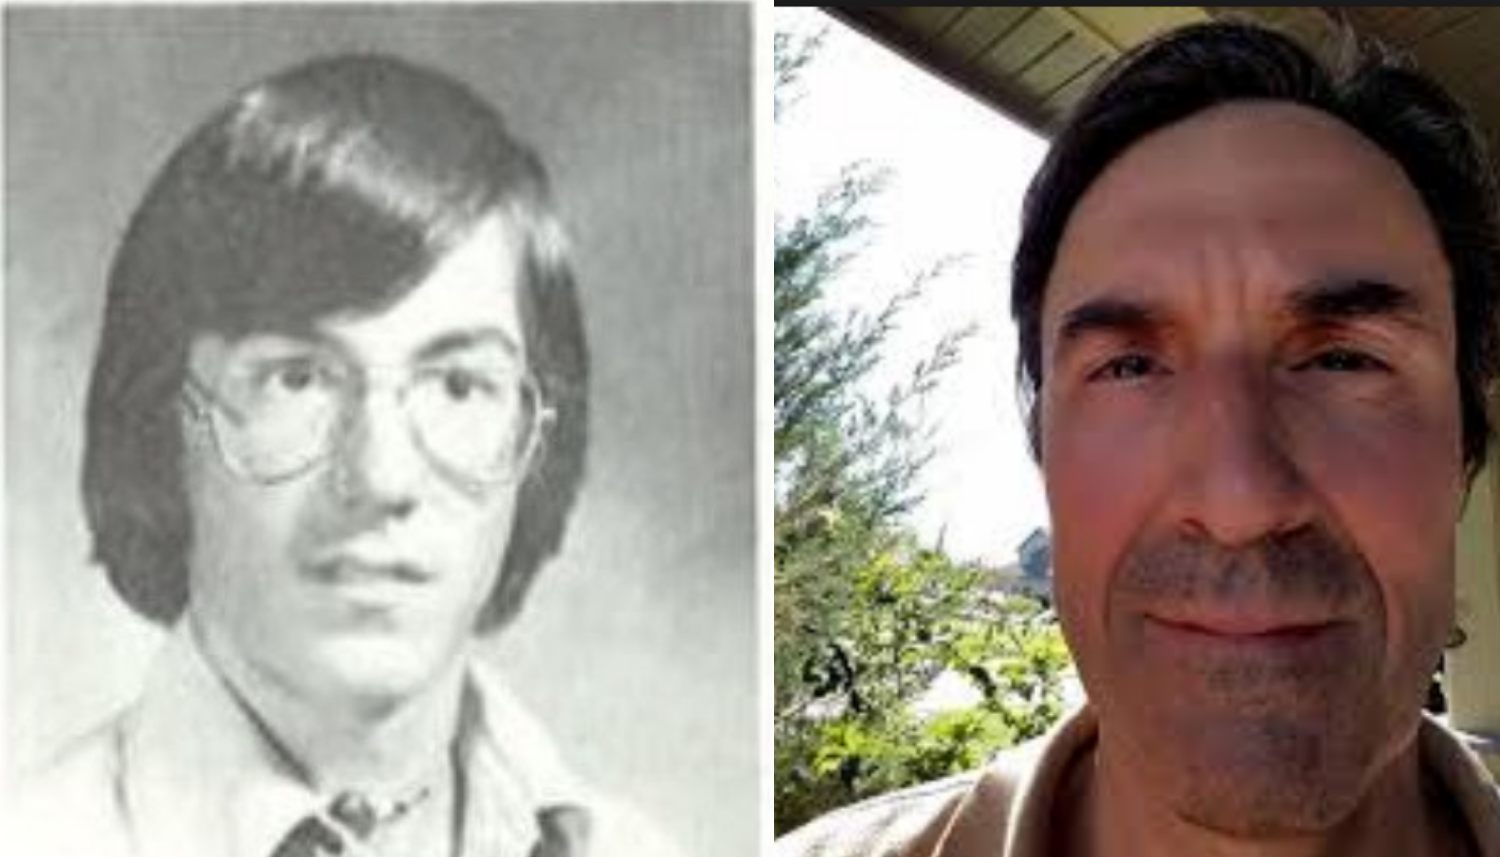 From left, Franz Glaus' yearbook photo from the late 1970s, and a more recent photo of Glaus. (Submitted)